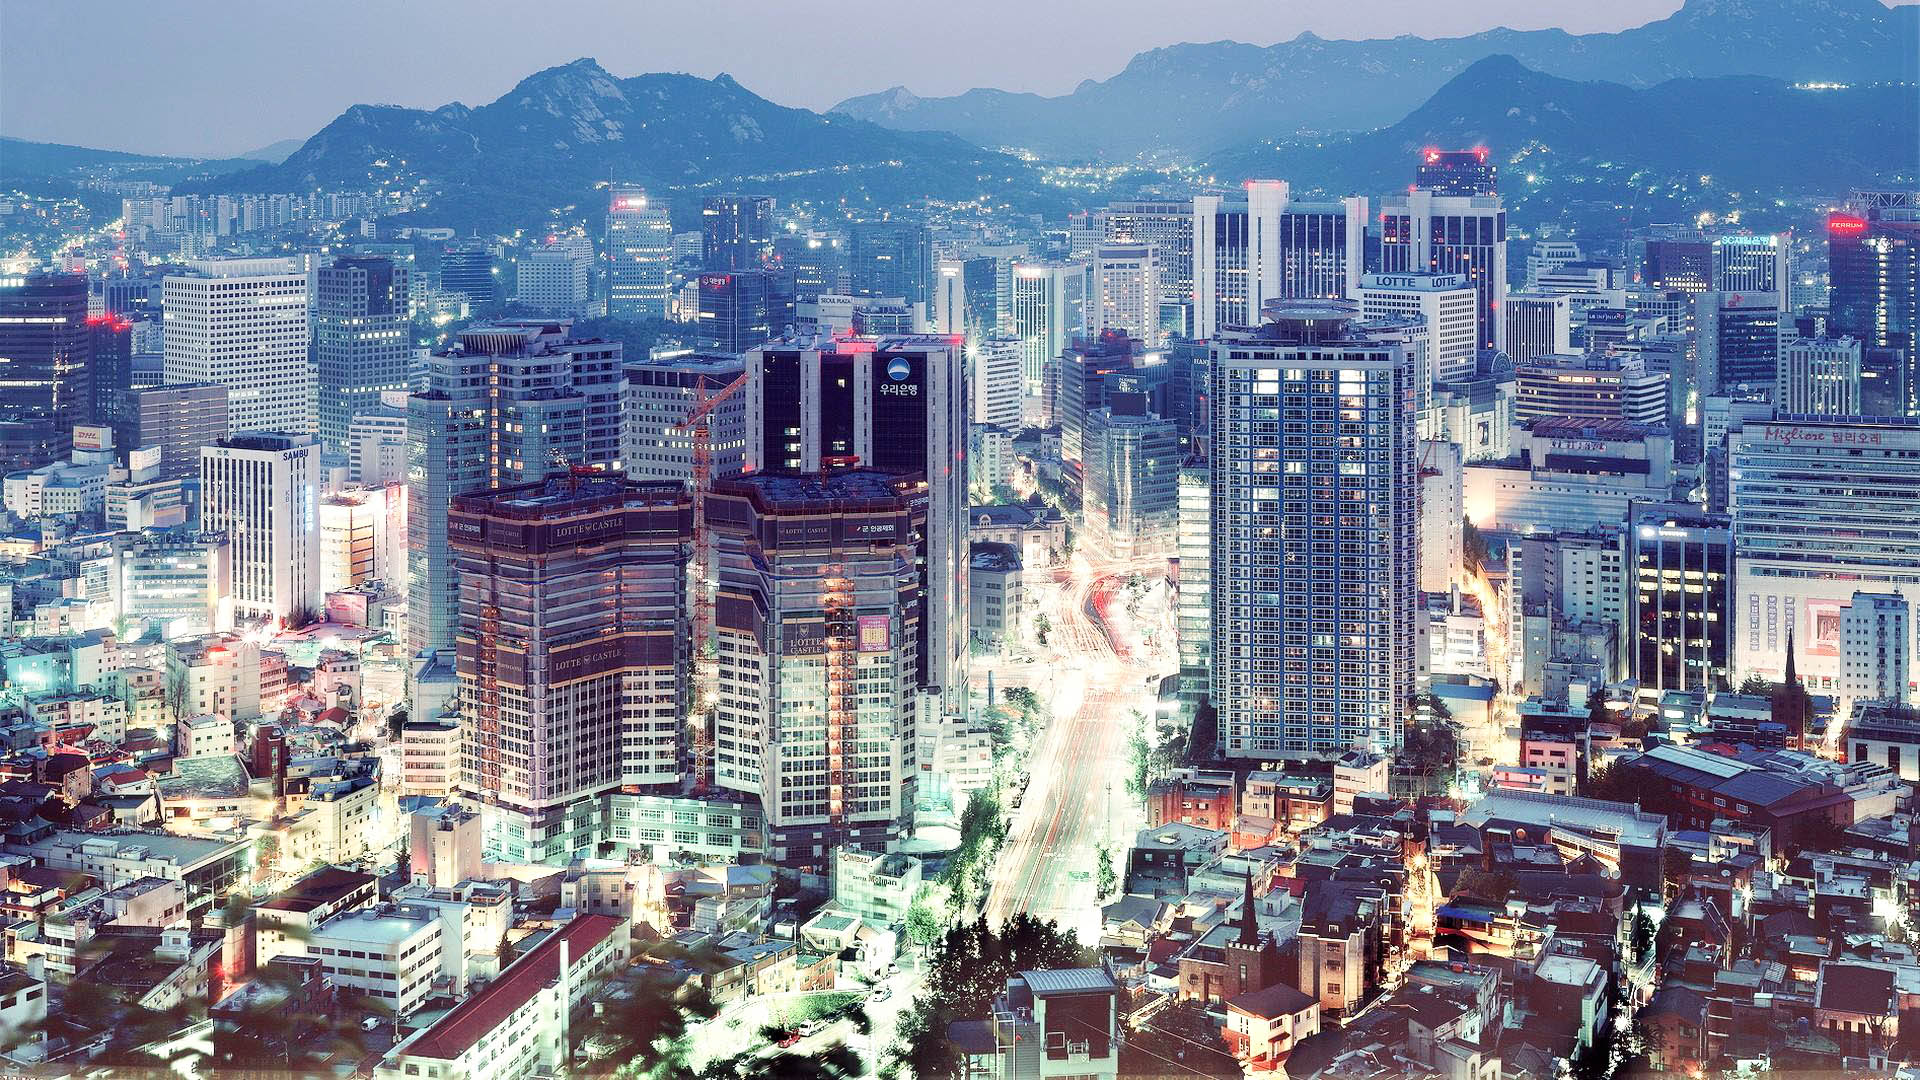 seoul awesome hd wallpapers & desktop backgrounds - all hd wallpapers